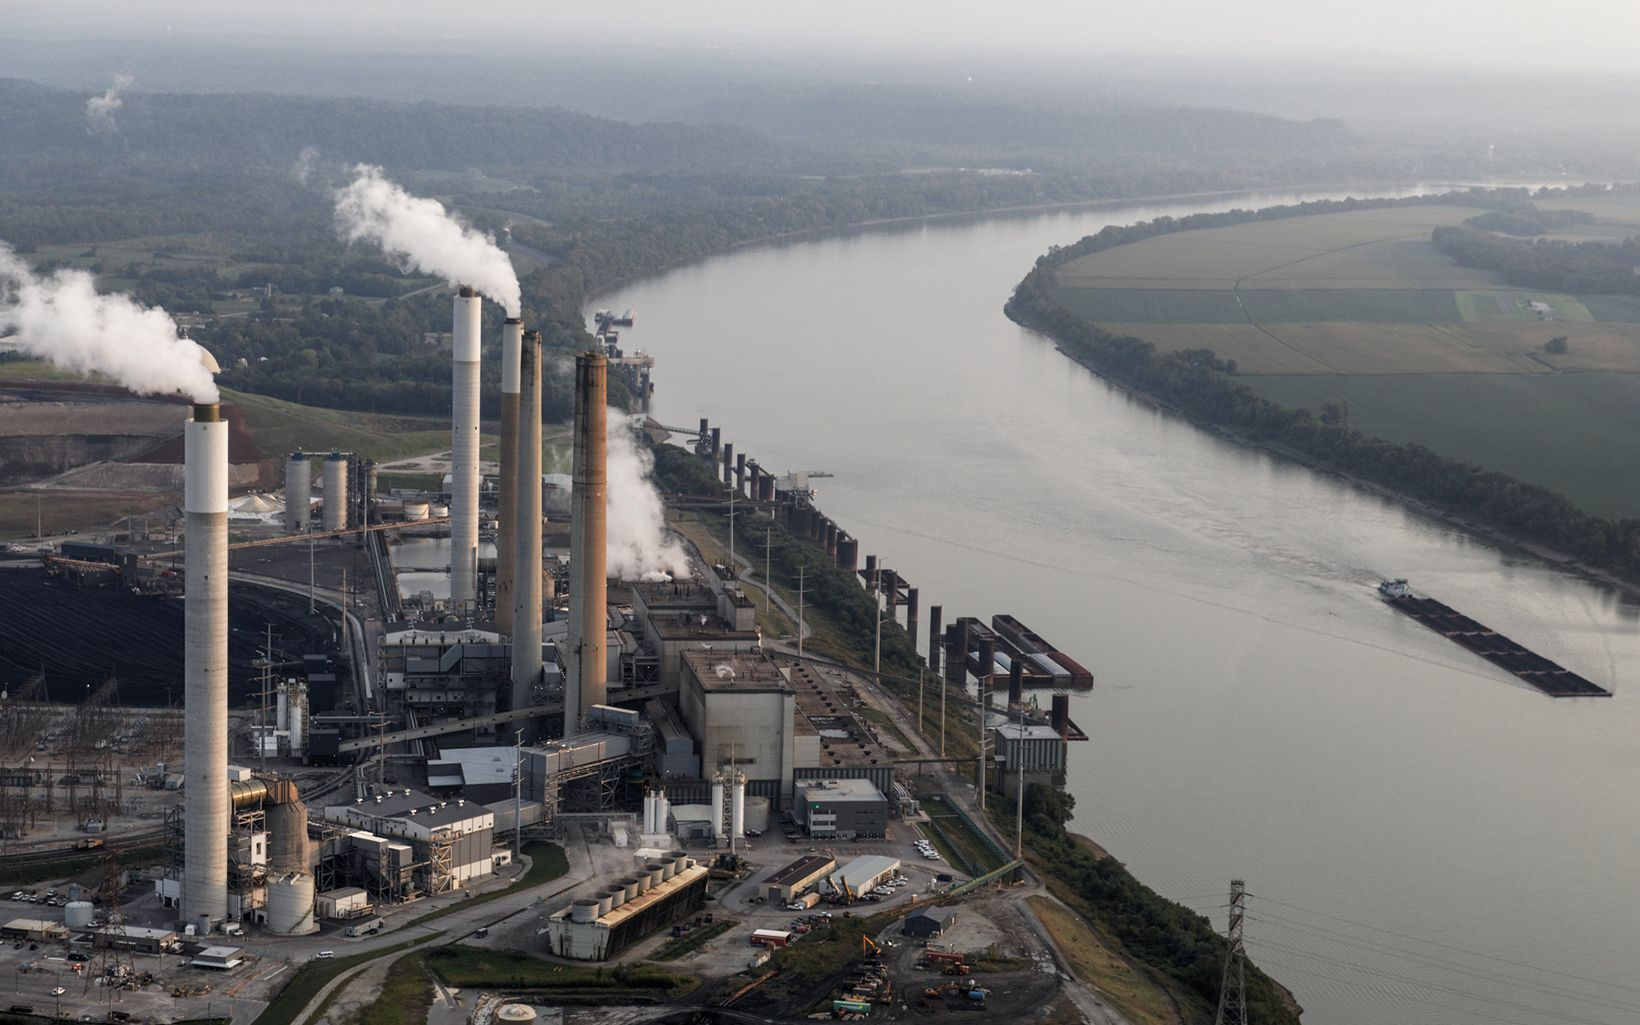 Mill Creek Coal Power Plant in Louisville. Louisville is located in the Ohio River Valley, and the geography causes polluted air from industrial centers to the north and west to linger over the city, resulting in local air quality issues.